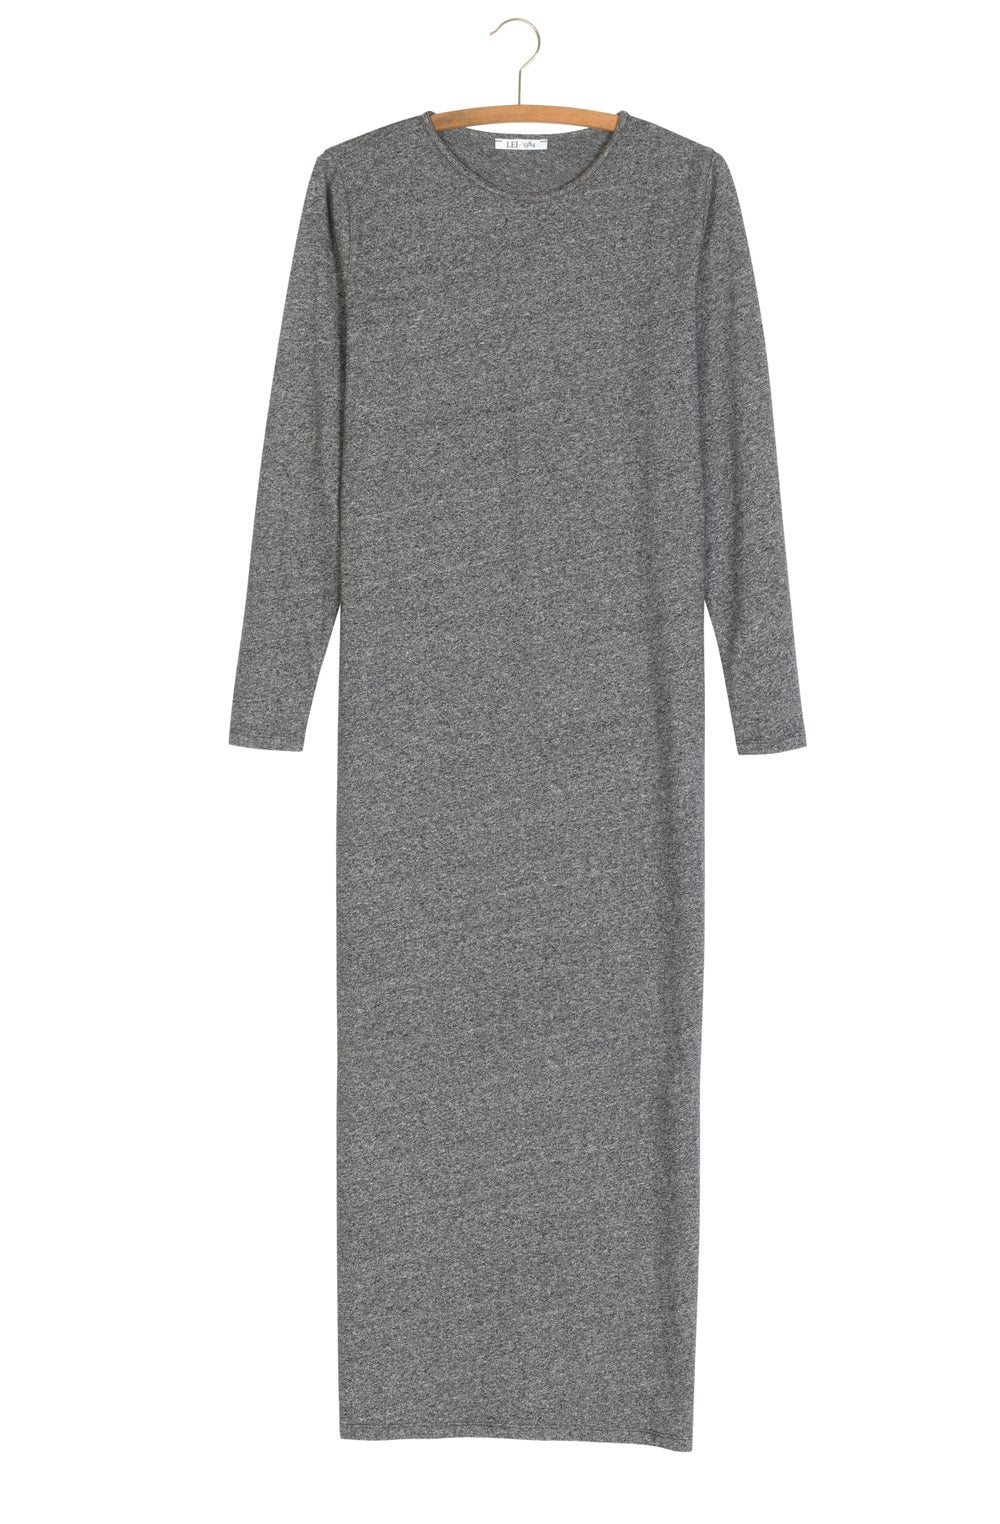 Image of Robe longue jersey BLANDINE 90€ -60%